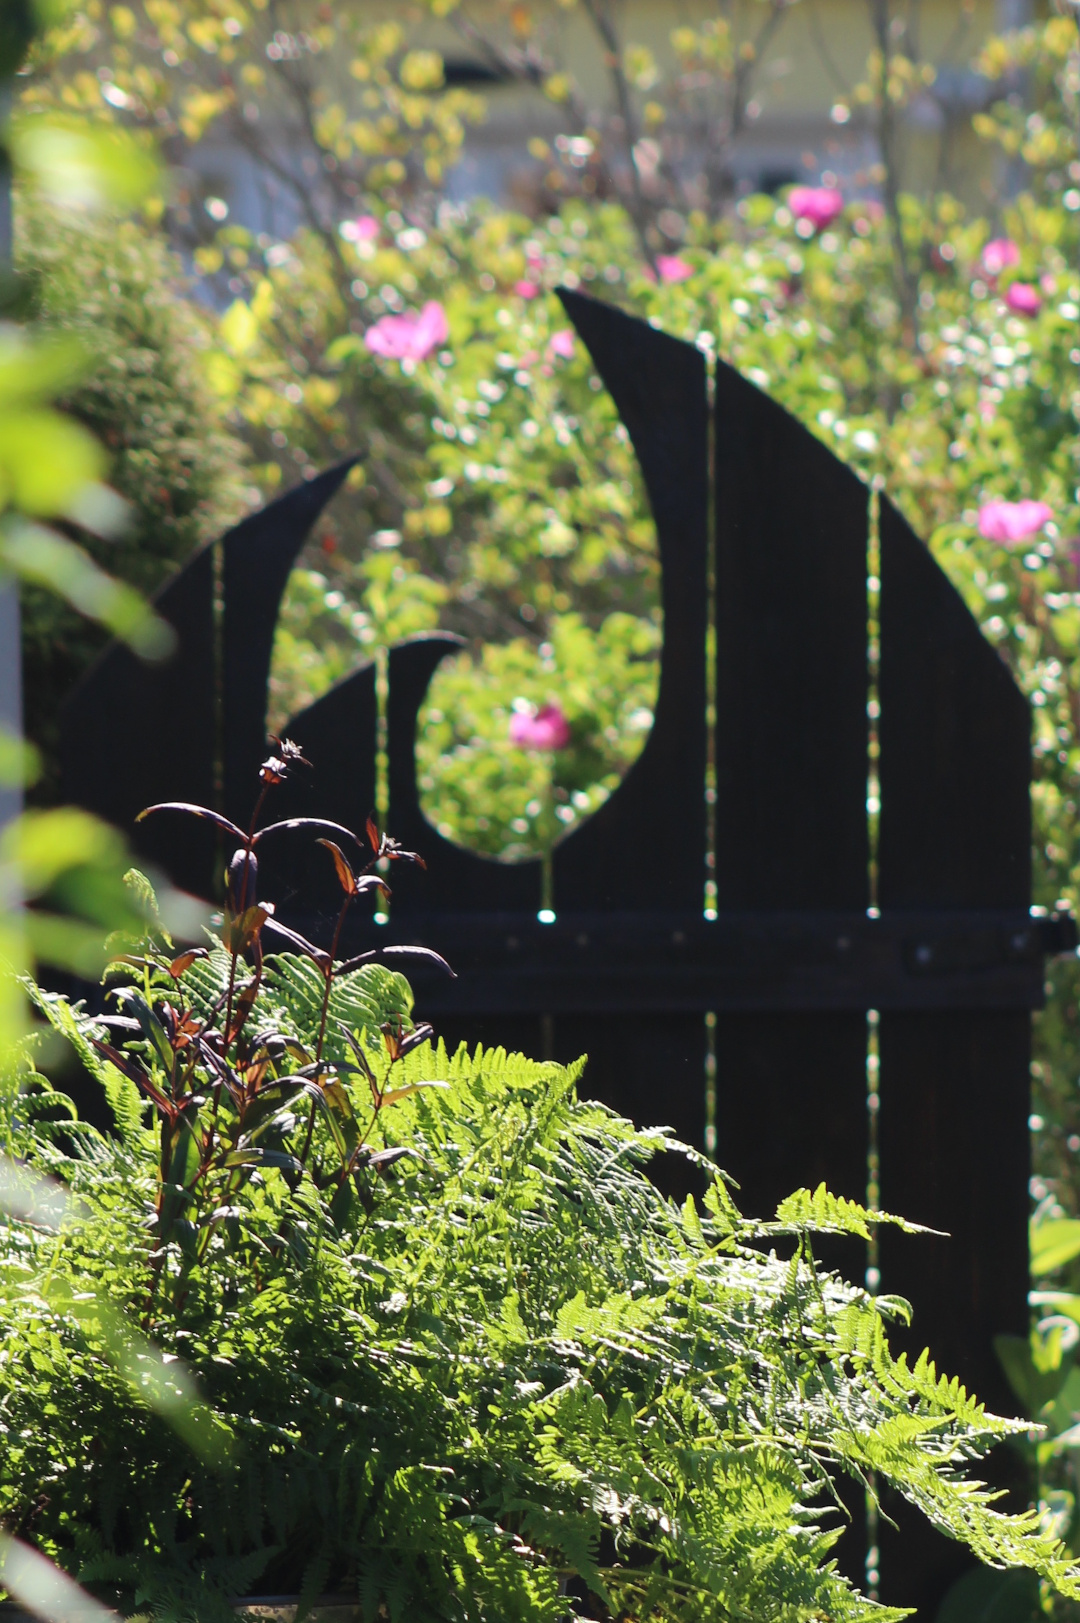 fern growing in front of uniquely shaped garden gate